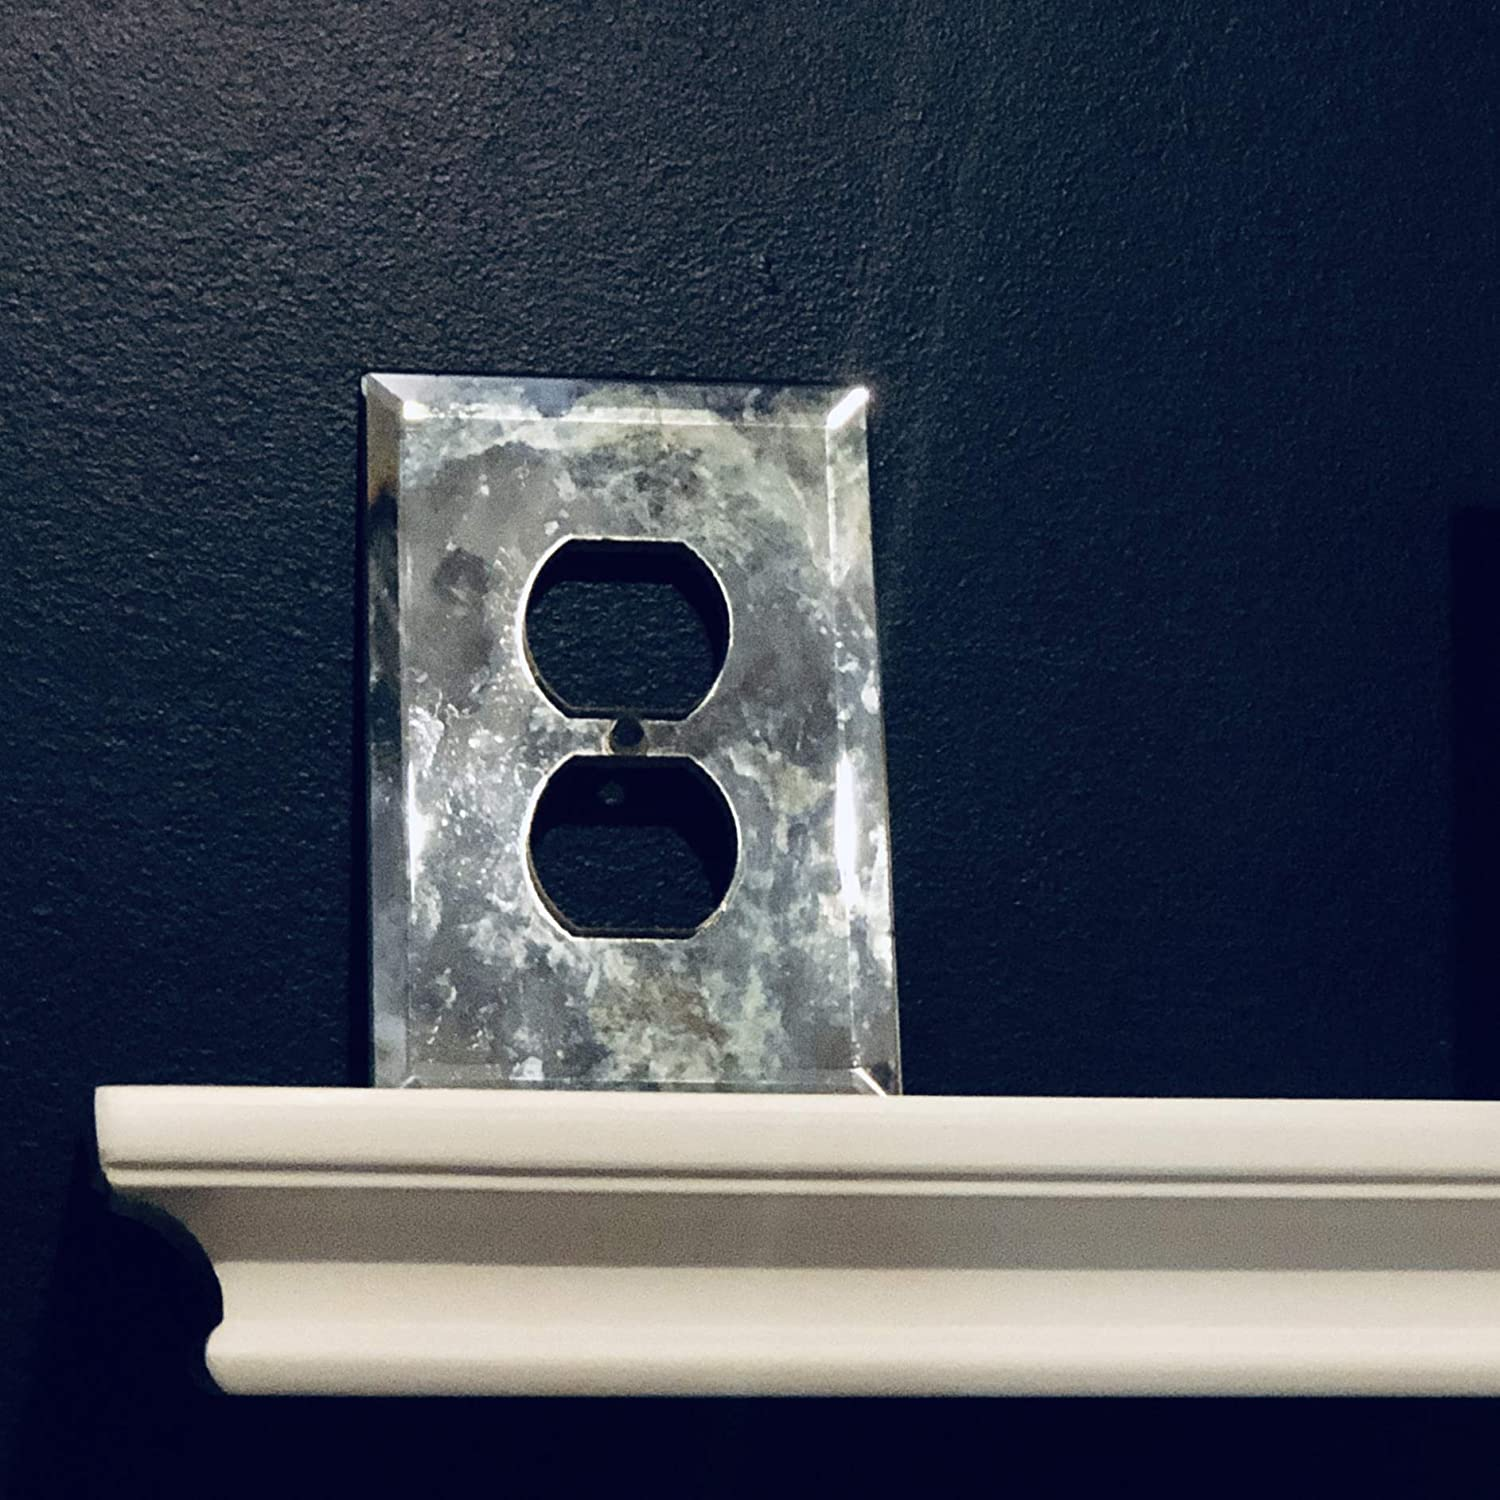 Decorative Antiqued Mirror Beveled Glass Outlet Cover